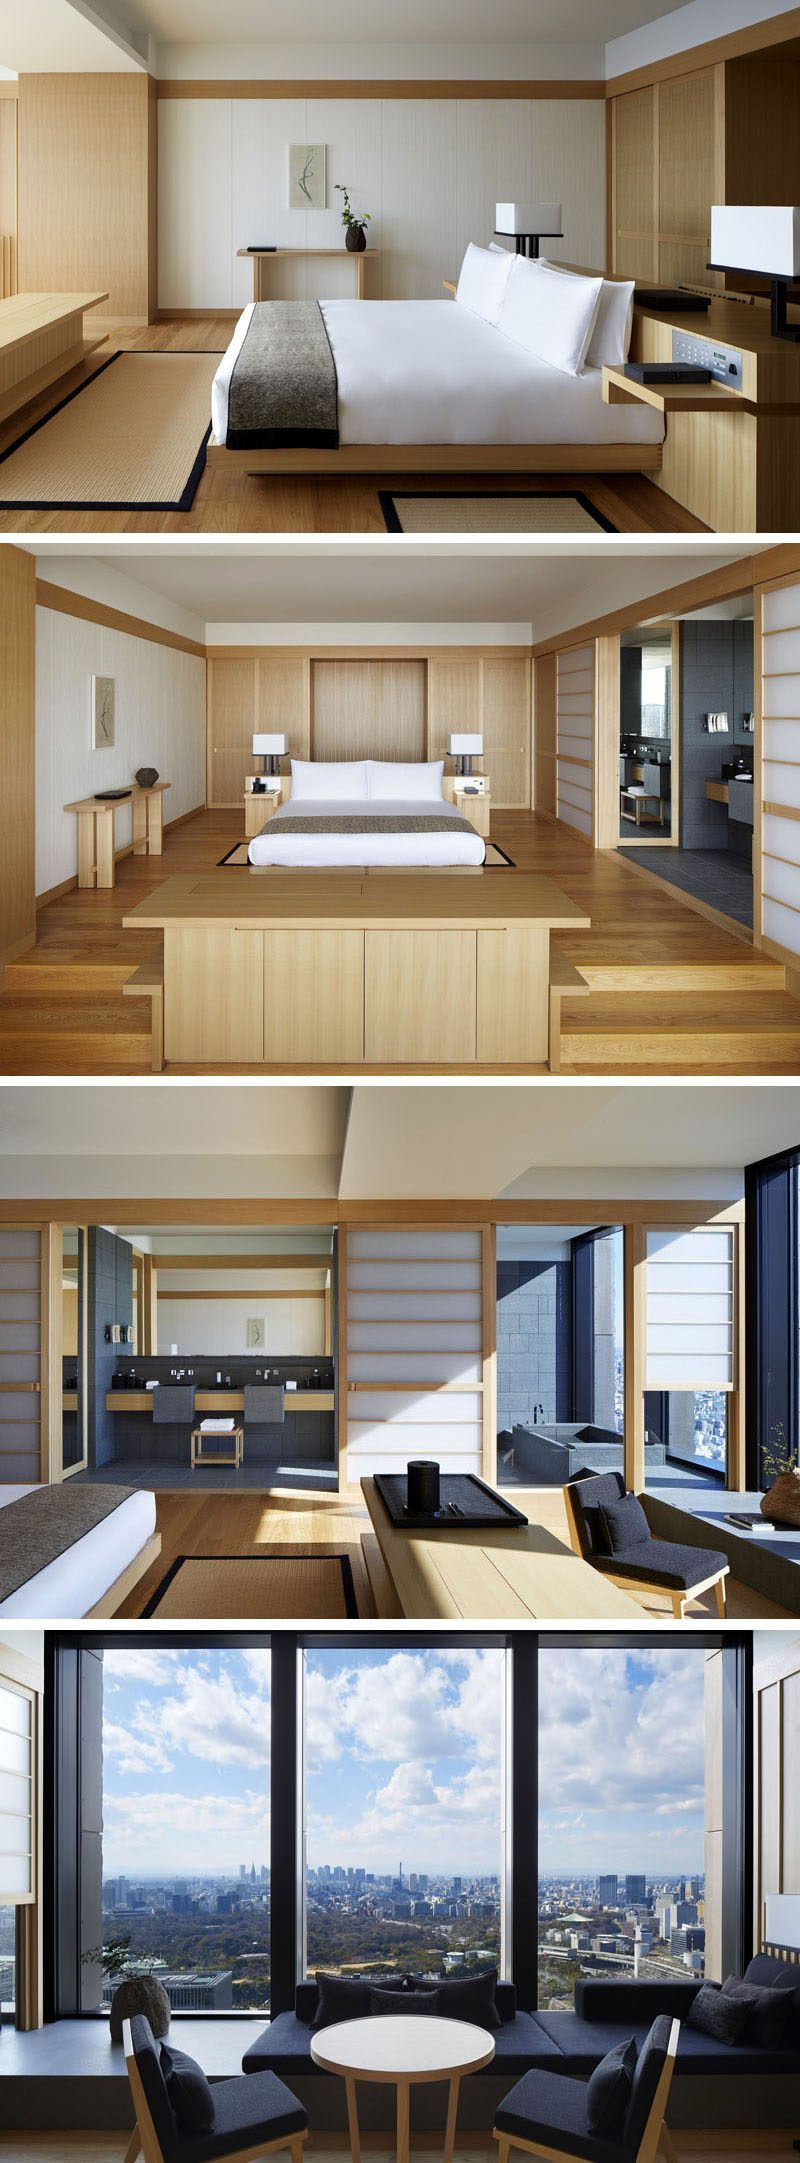 10 Concepts to Know Before Remodeling Your Interior into Japanese ...